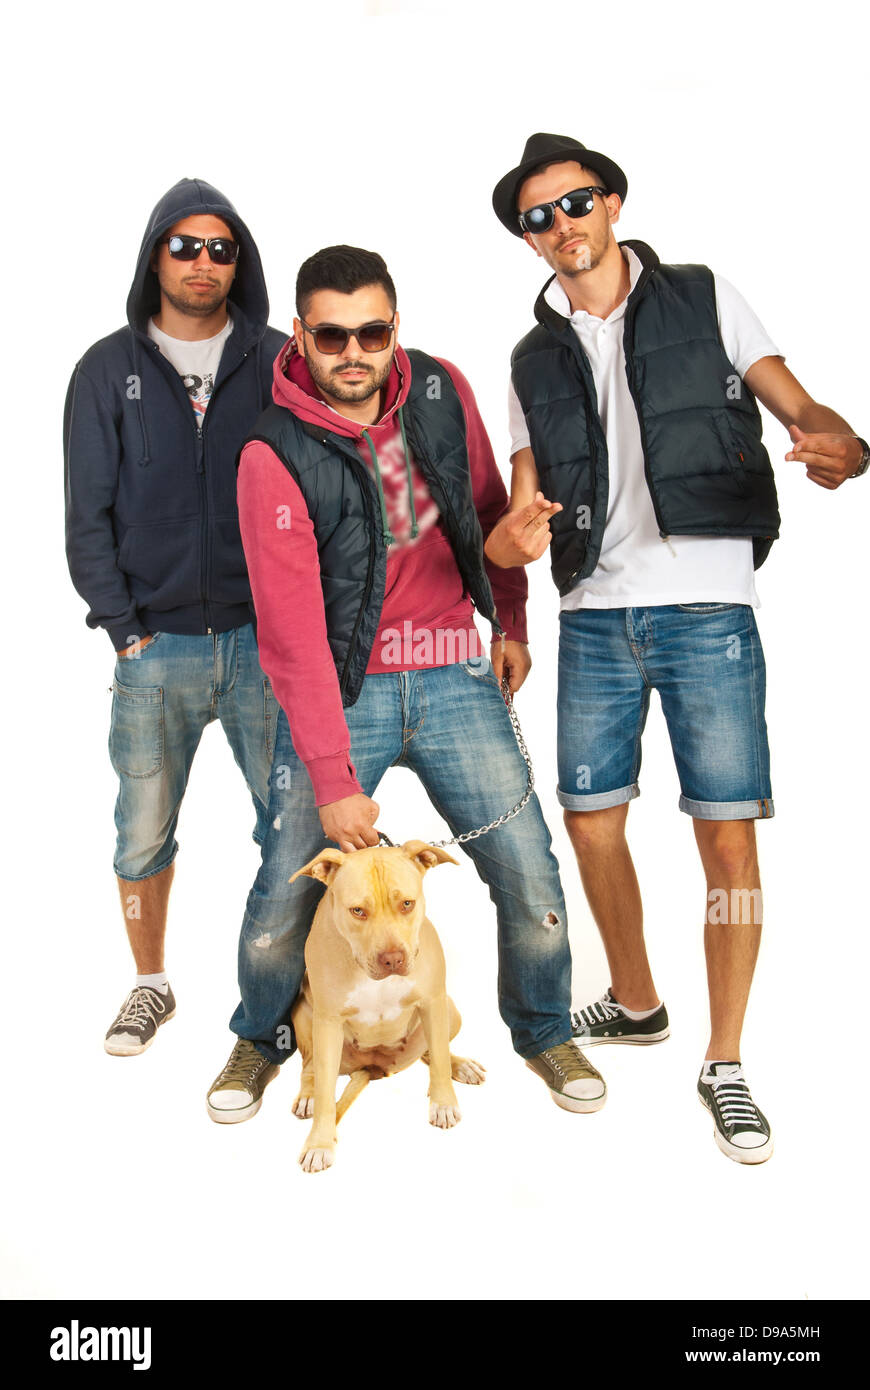 dab04db0b8d7 Three rappers guys with sunglasses and pitbull dog isolated on white  background